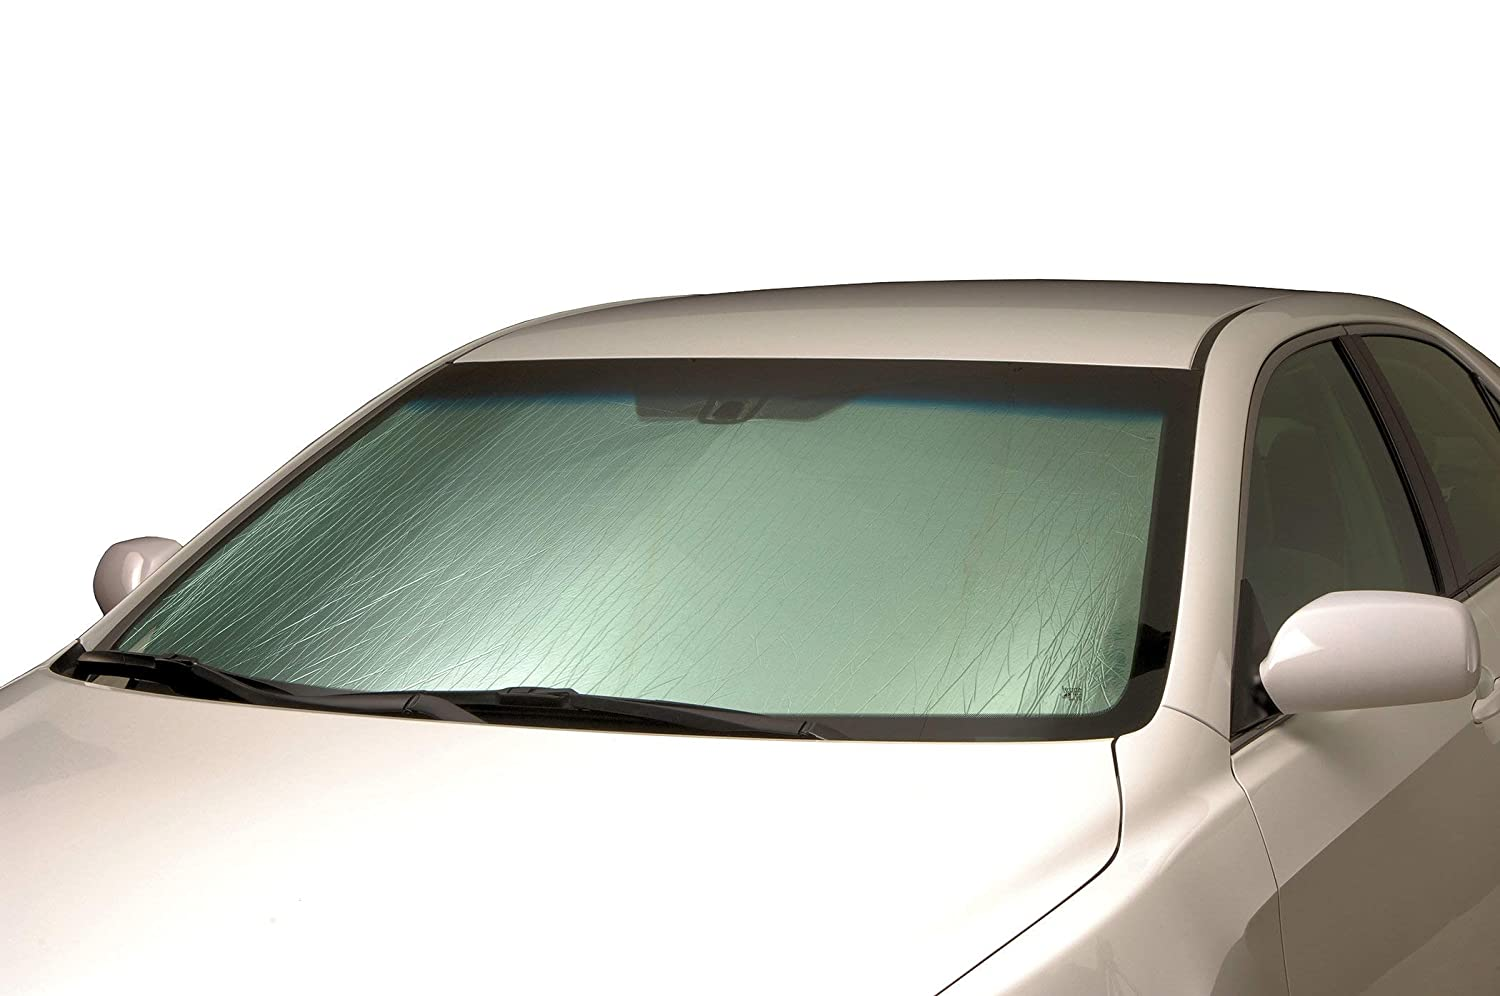 Intro-Tech CH-25 Custom Fit Windshield Sunshade for select Chevrolet Camaro Models Silver